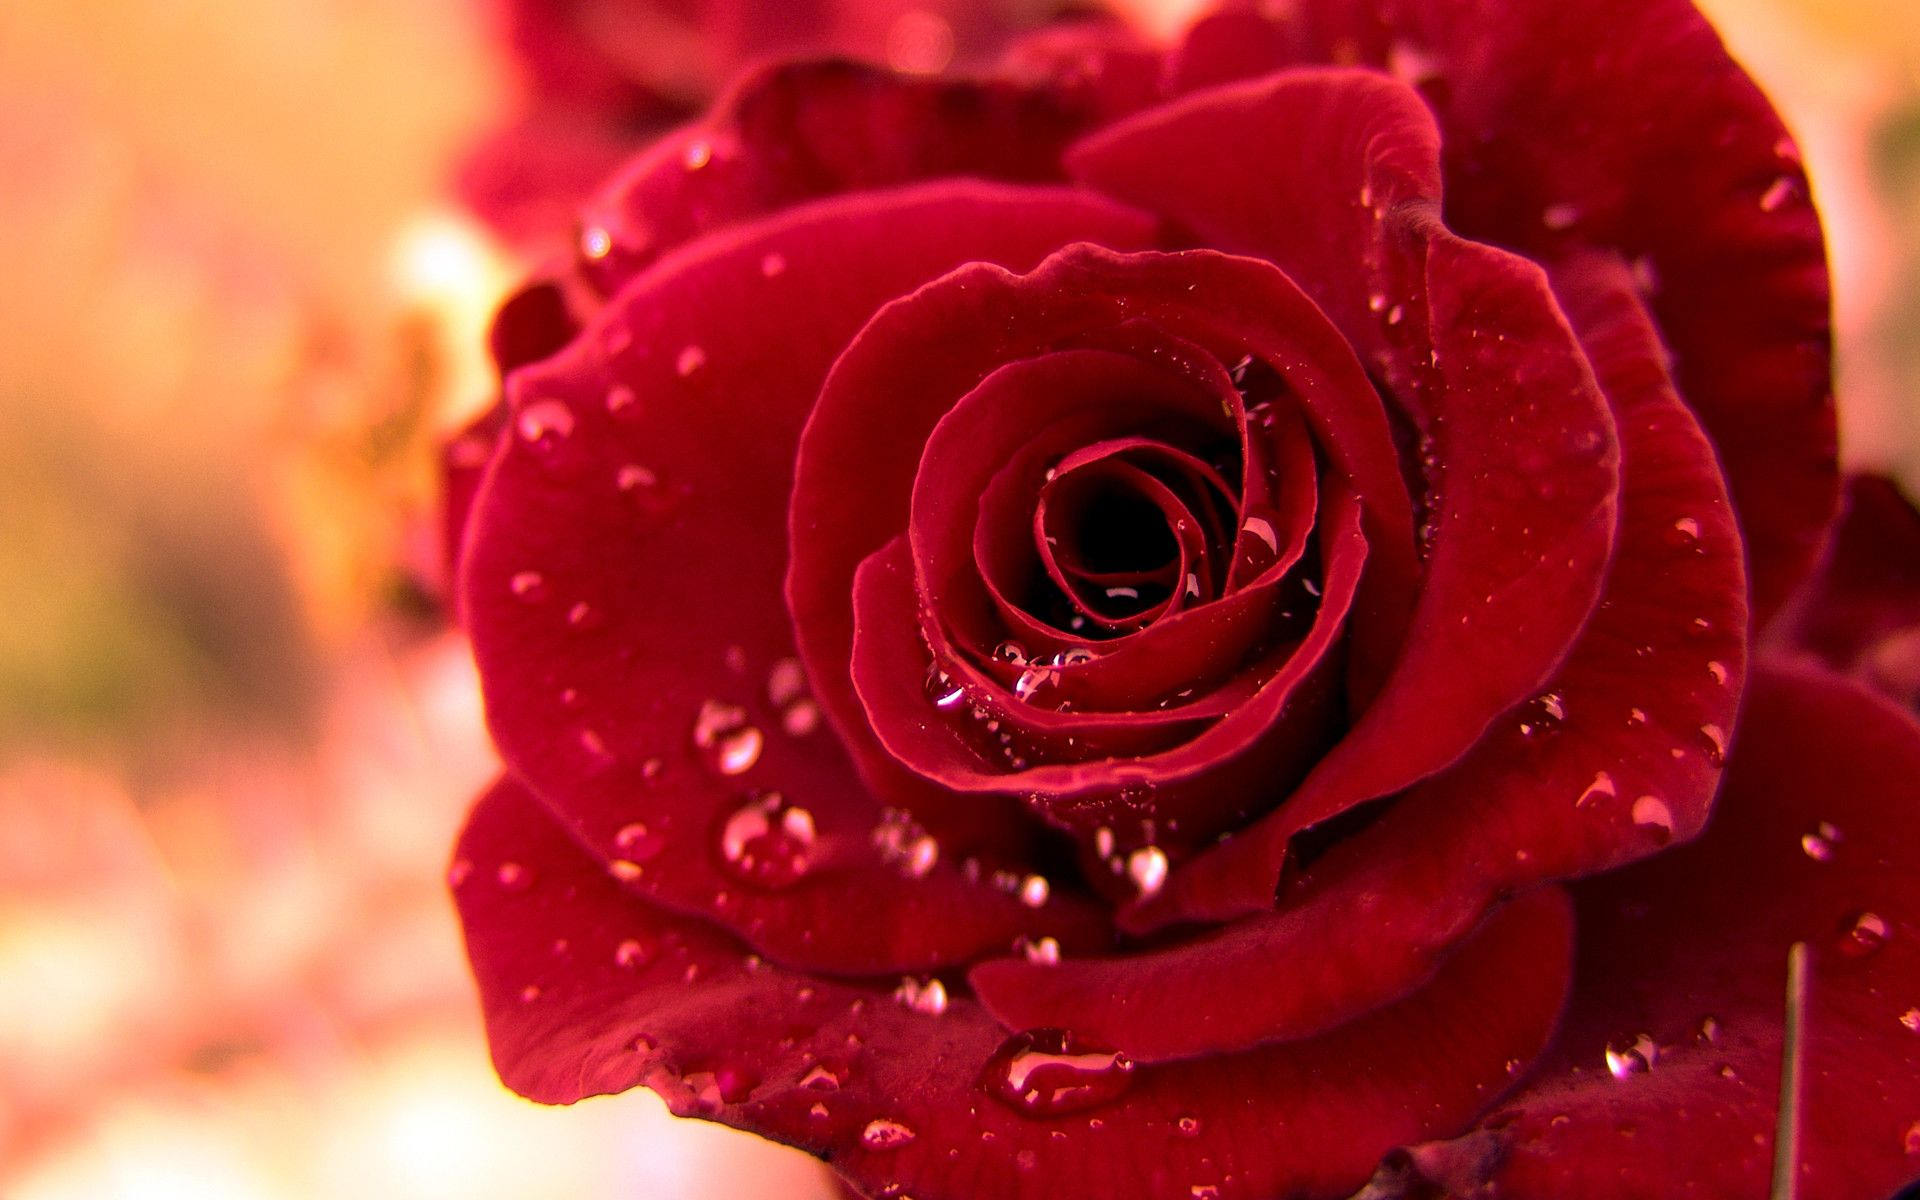 Cool Background of Red Rose Flower